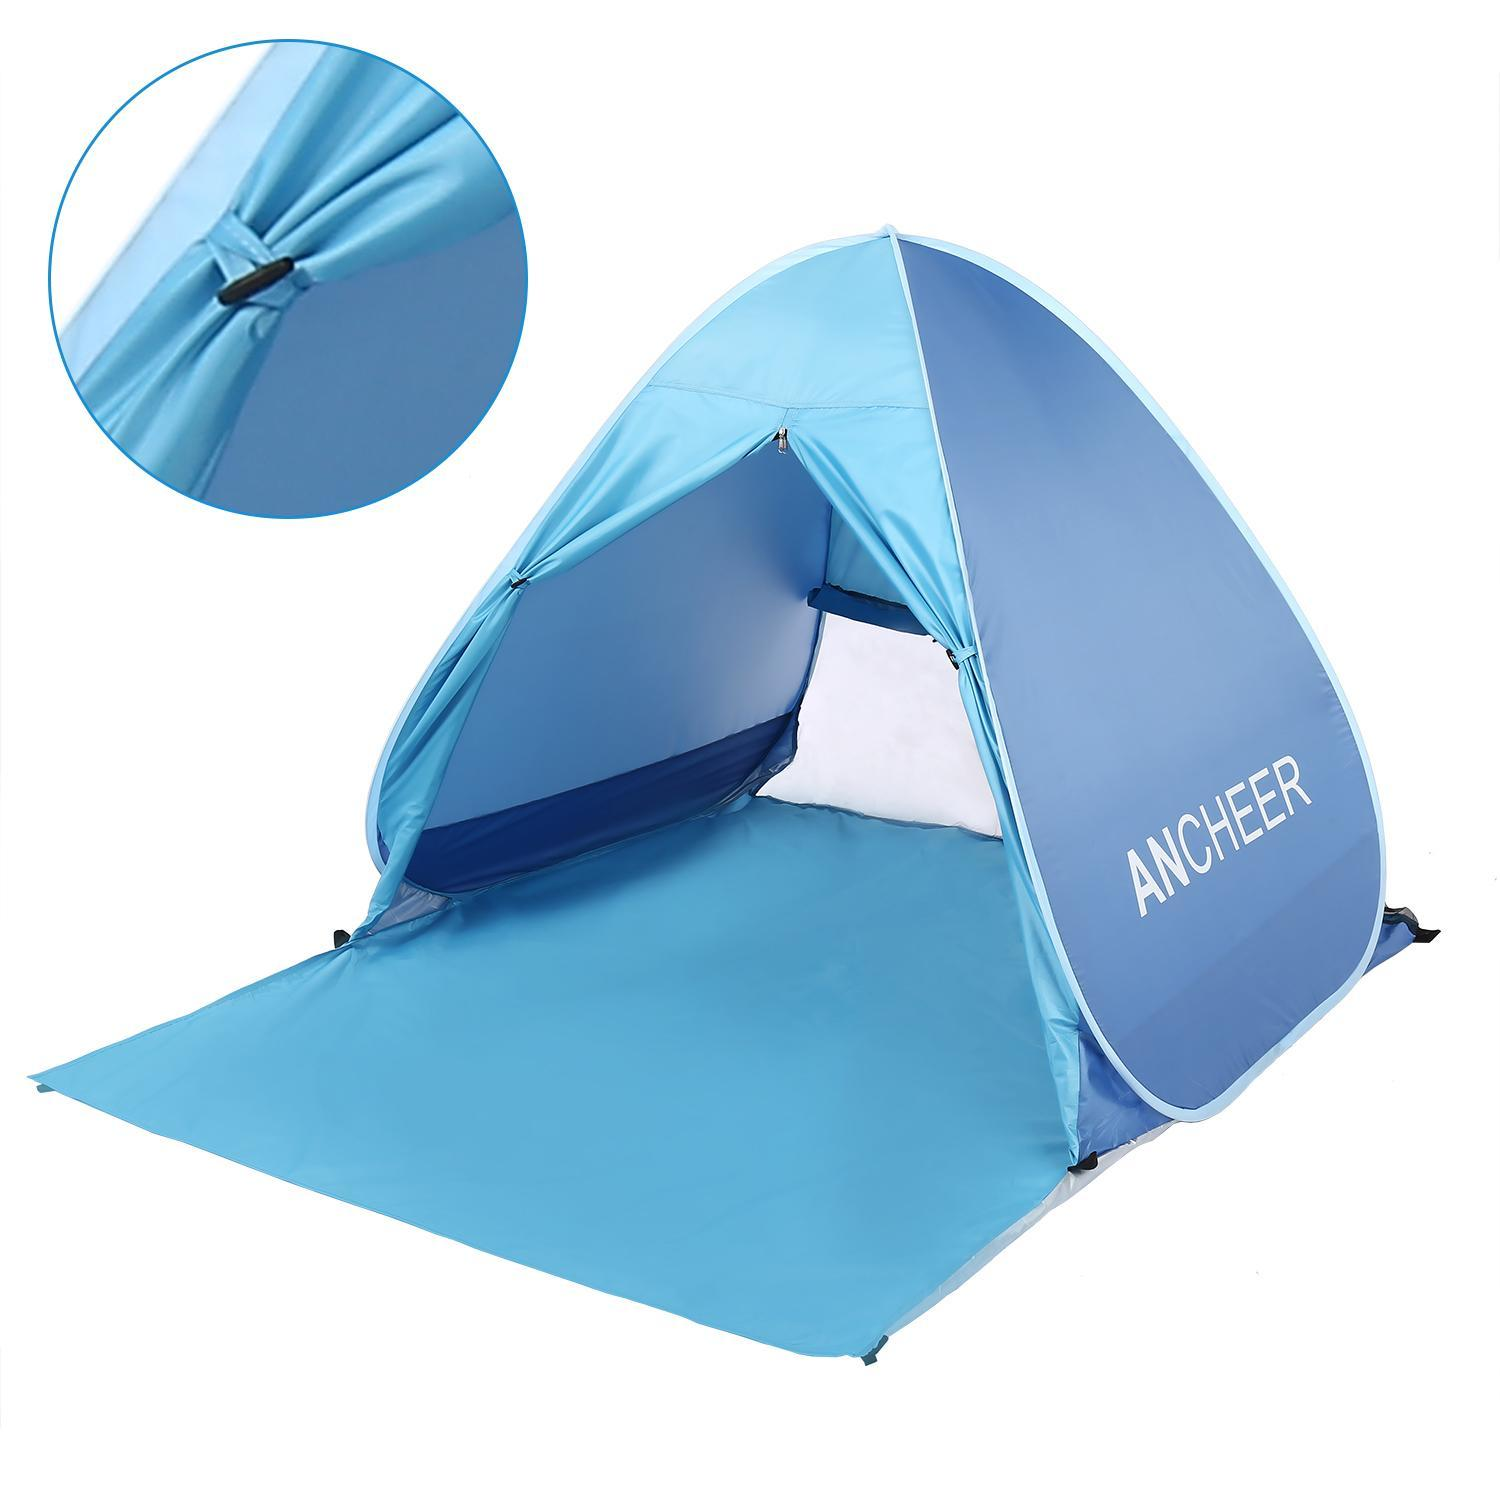 Portable UV Sun Shelter Baby Beach Tent Automatic Pop Up Shade Cabana ECLNK by